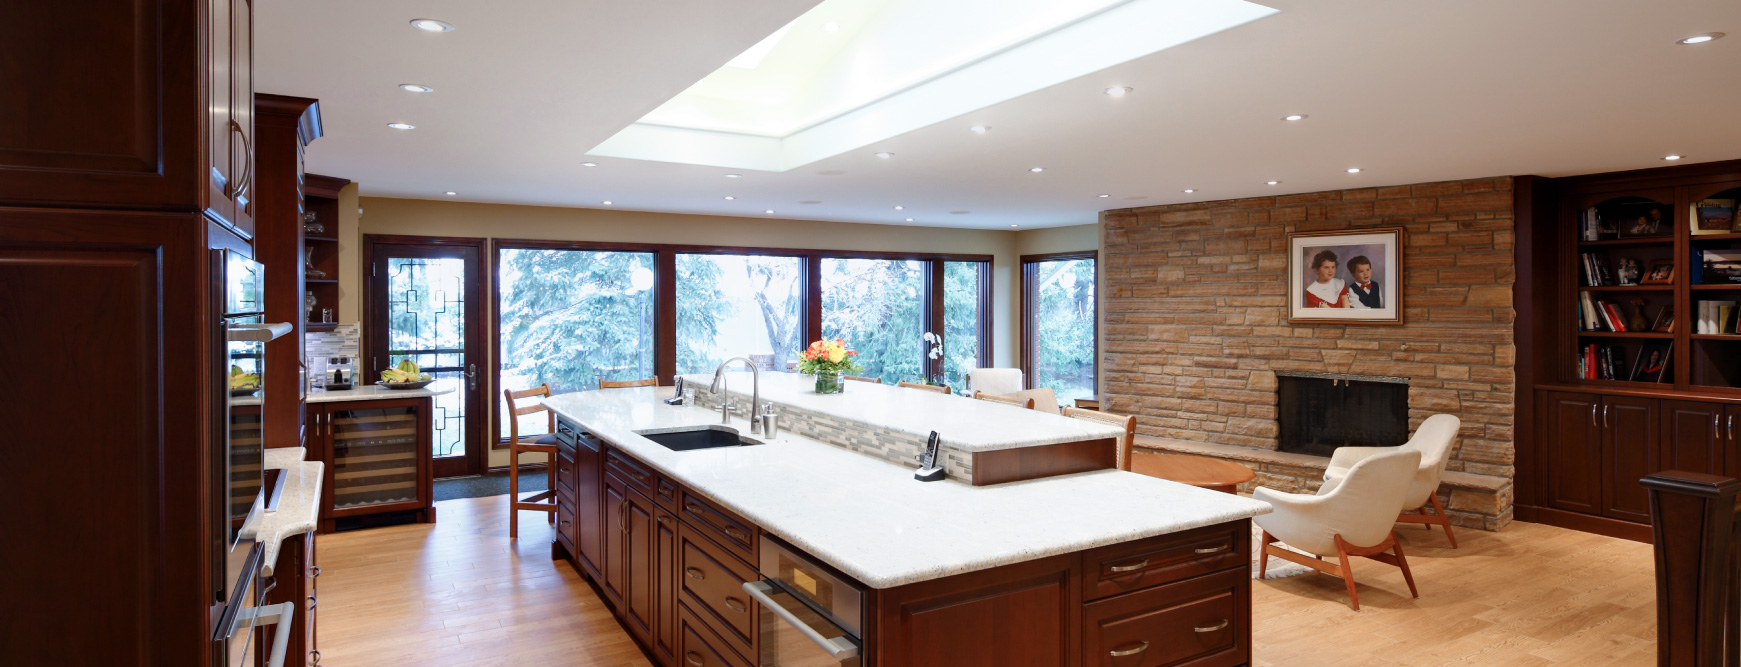 Custom Calgary open-concept kitchen renovation with skylight and heated floors.